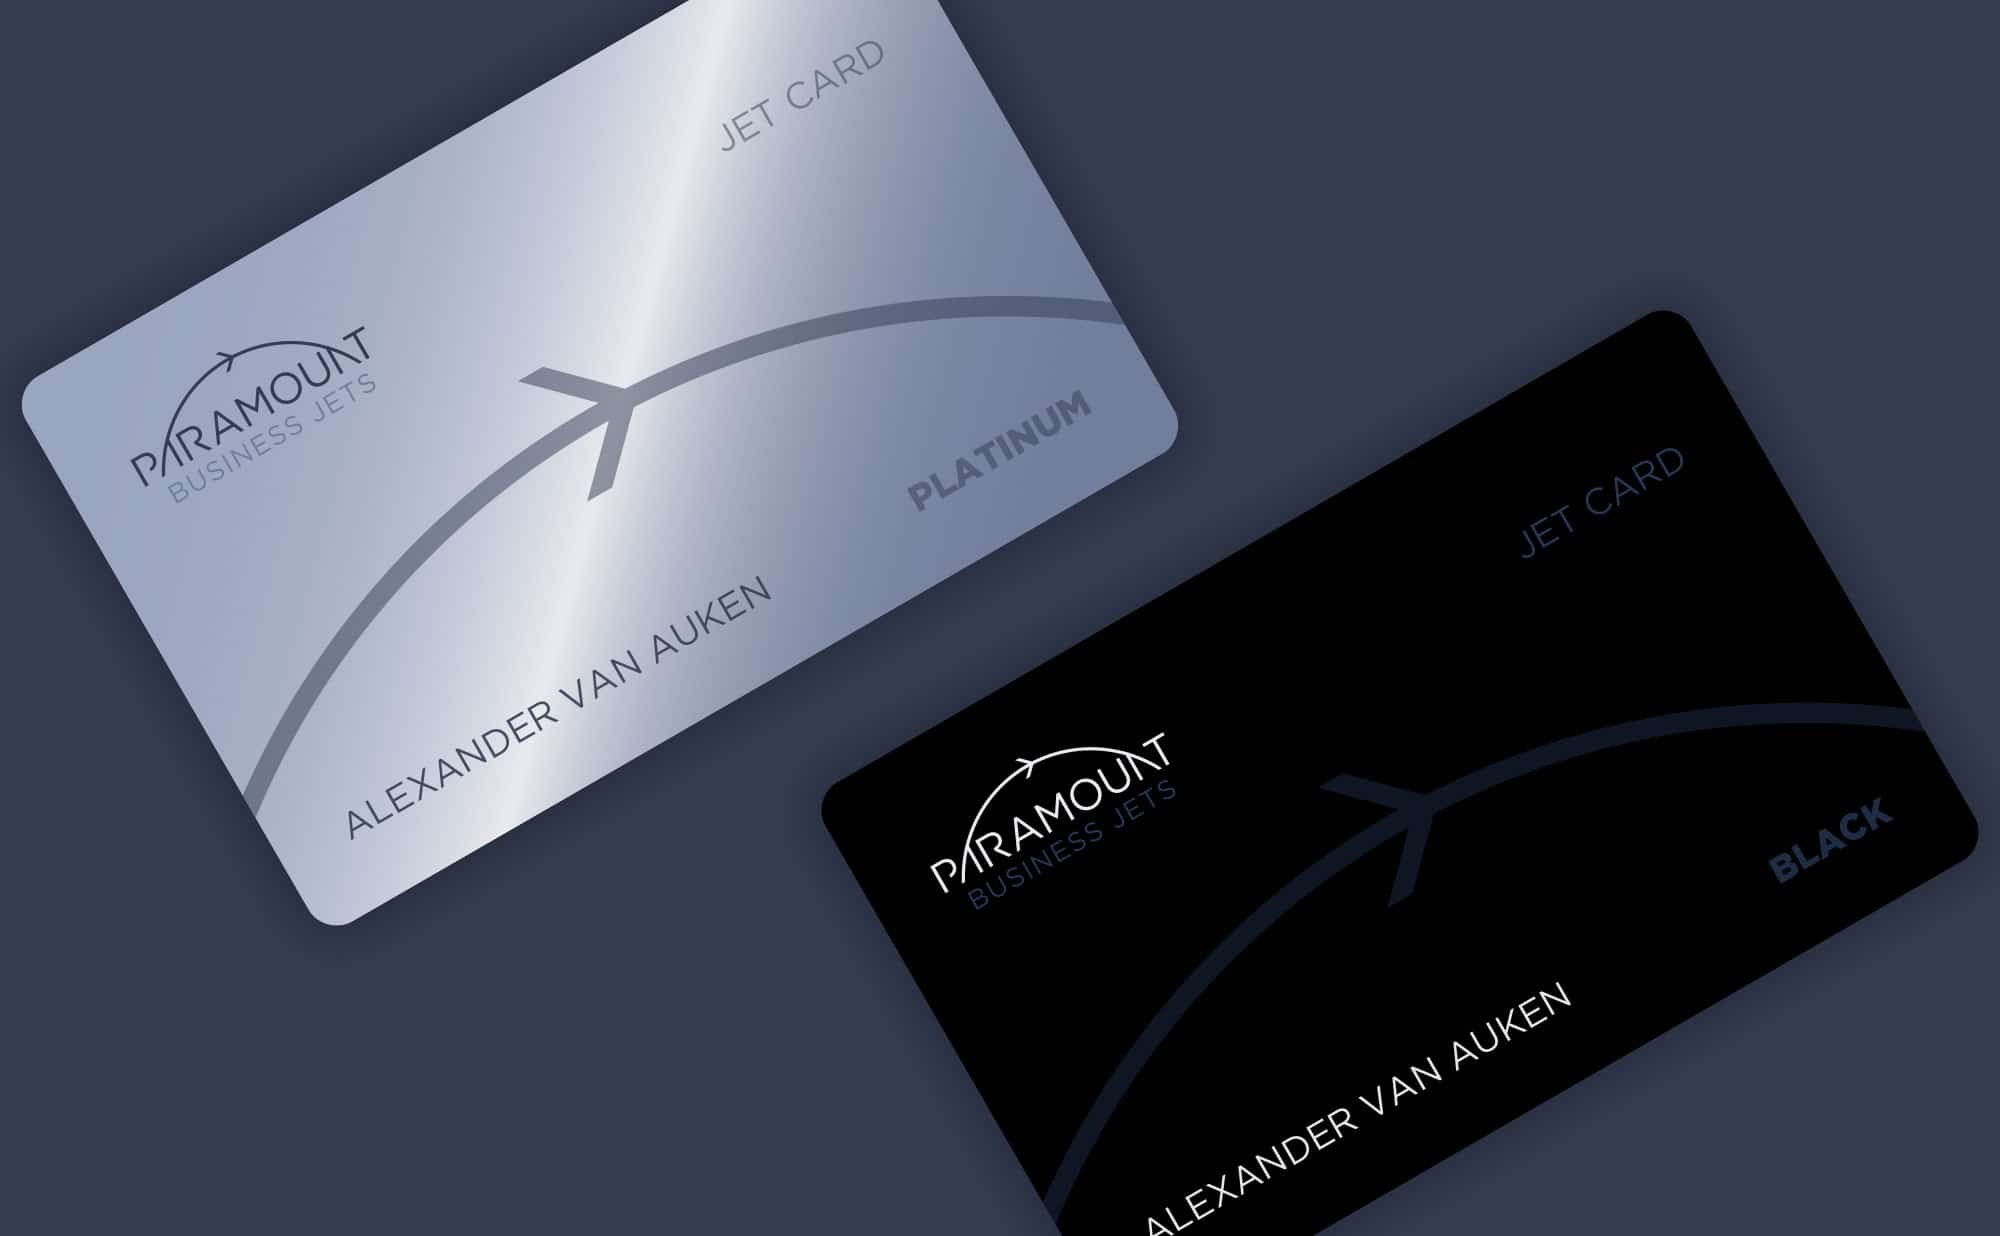 The Paramount Jet Cards